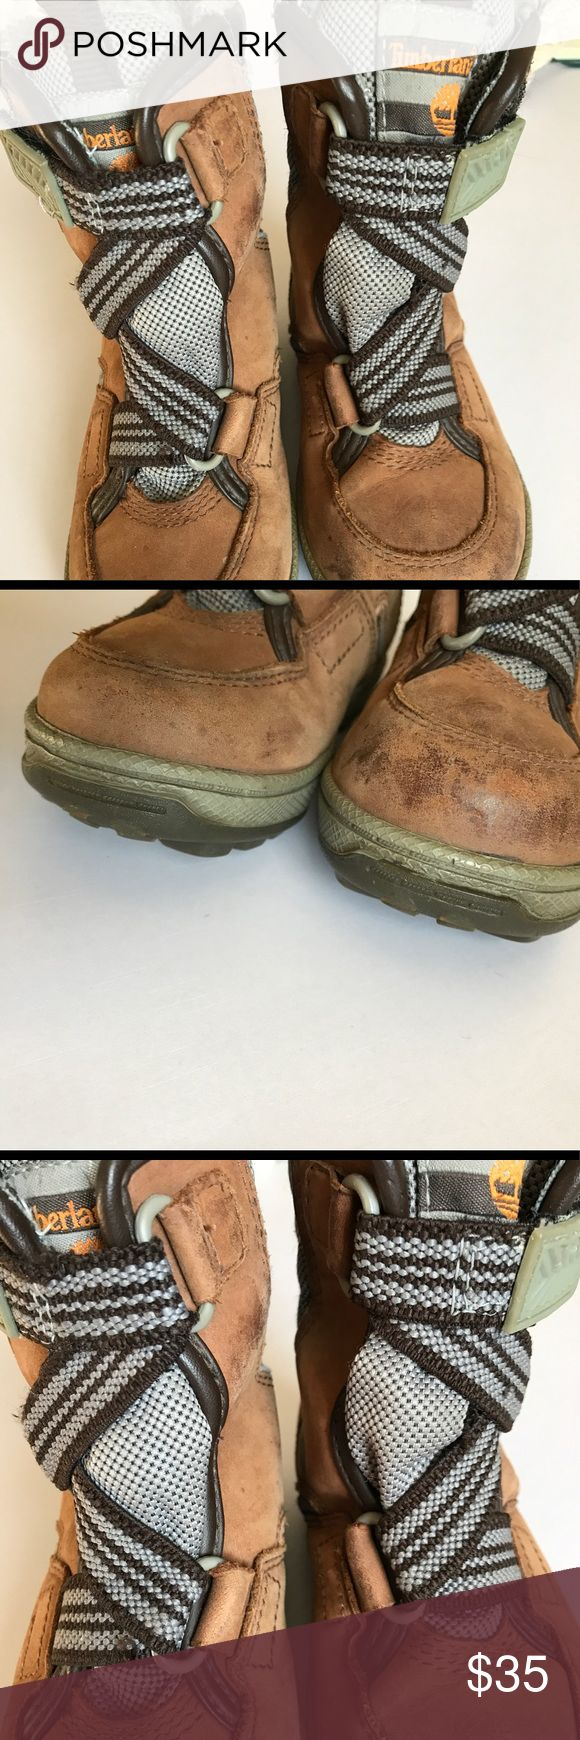 Toddler Timberland Boots Very good condition. Some wear on the tips. Please see photos. Timberland Shoes Boots